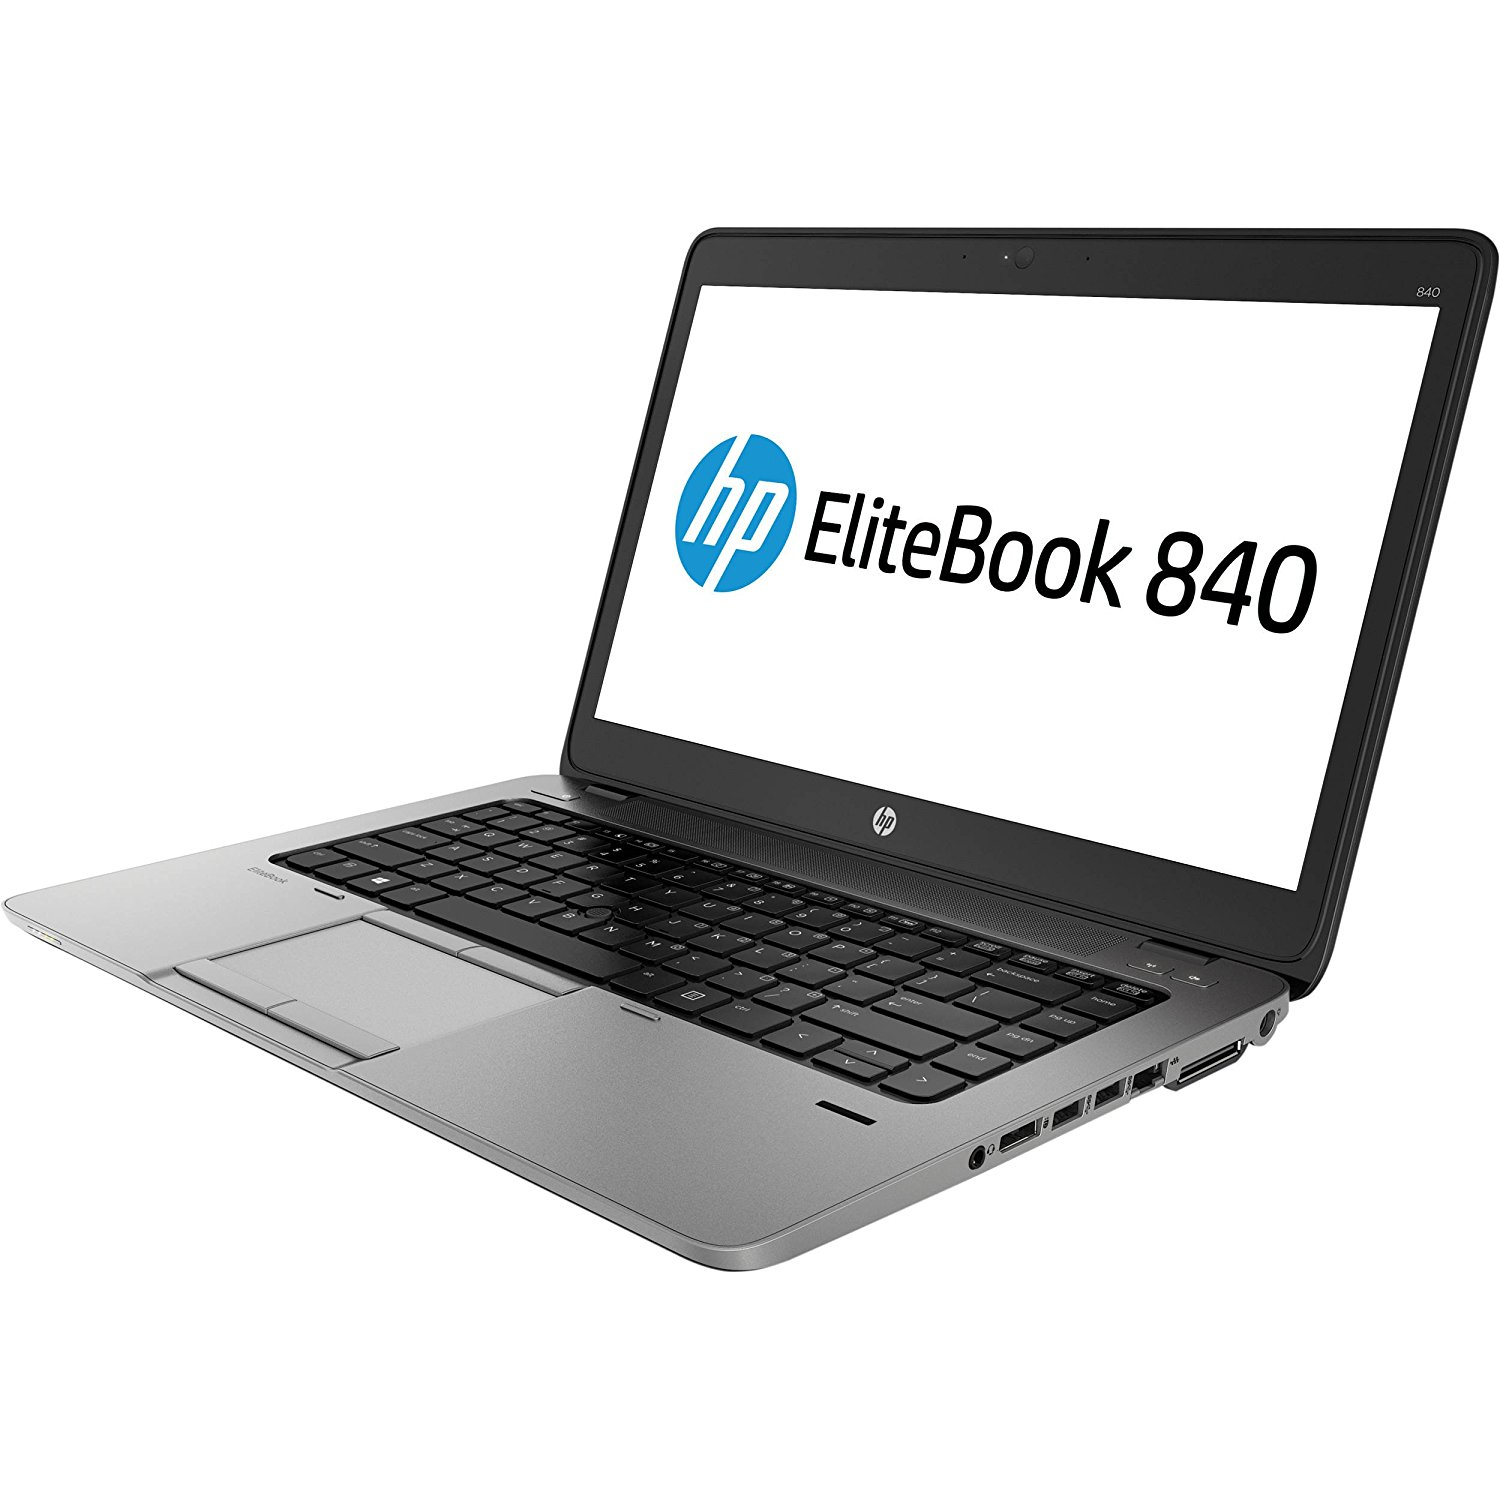 "Art. Portátil Ultrabook Hp EliteBook 840 G1 GRADO B (Core i7 4600u 2.10Ghz/8GB/180GB-SSD/14""/NO-DVD/W7P) Preinstalado"